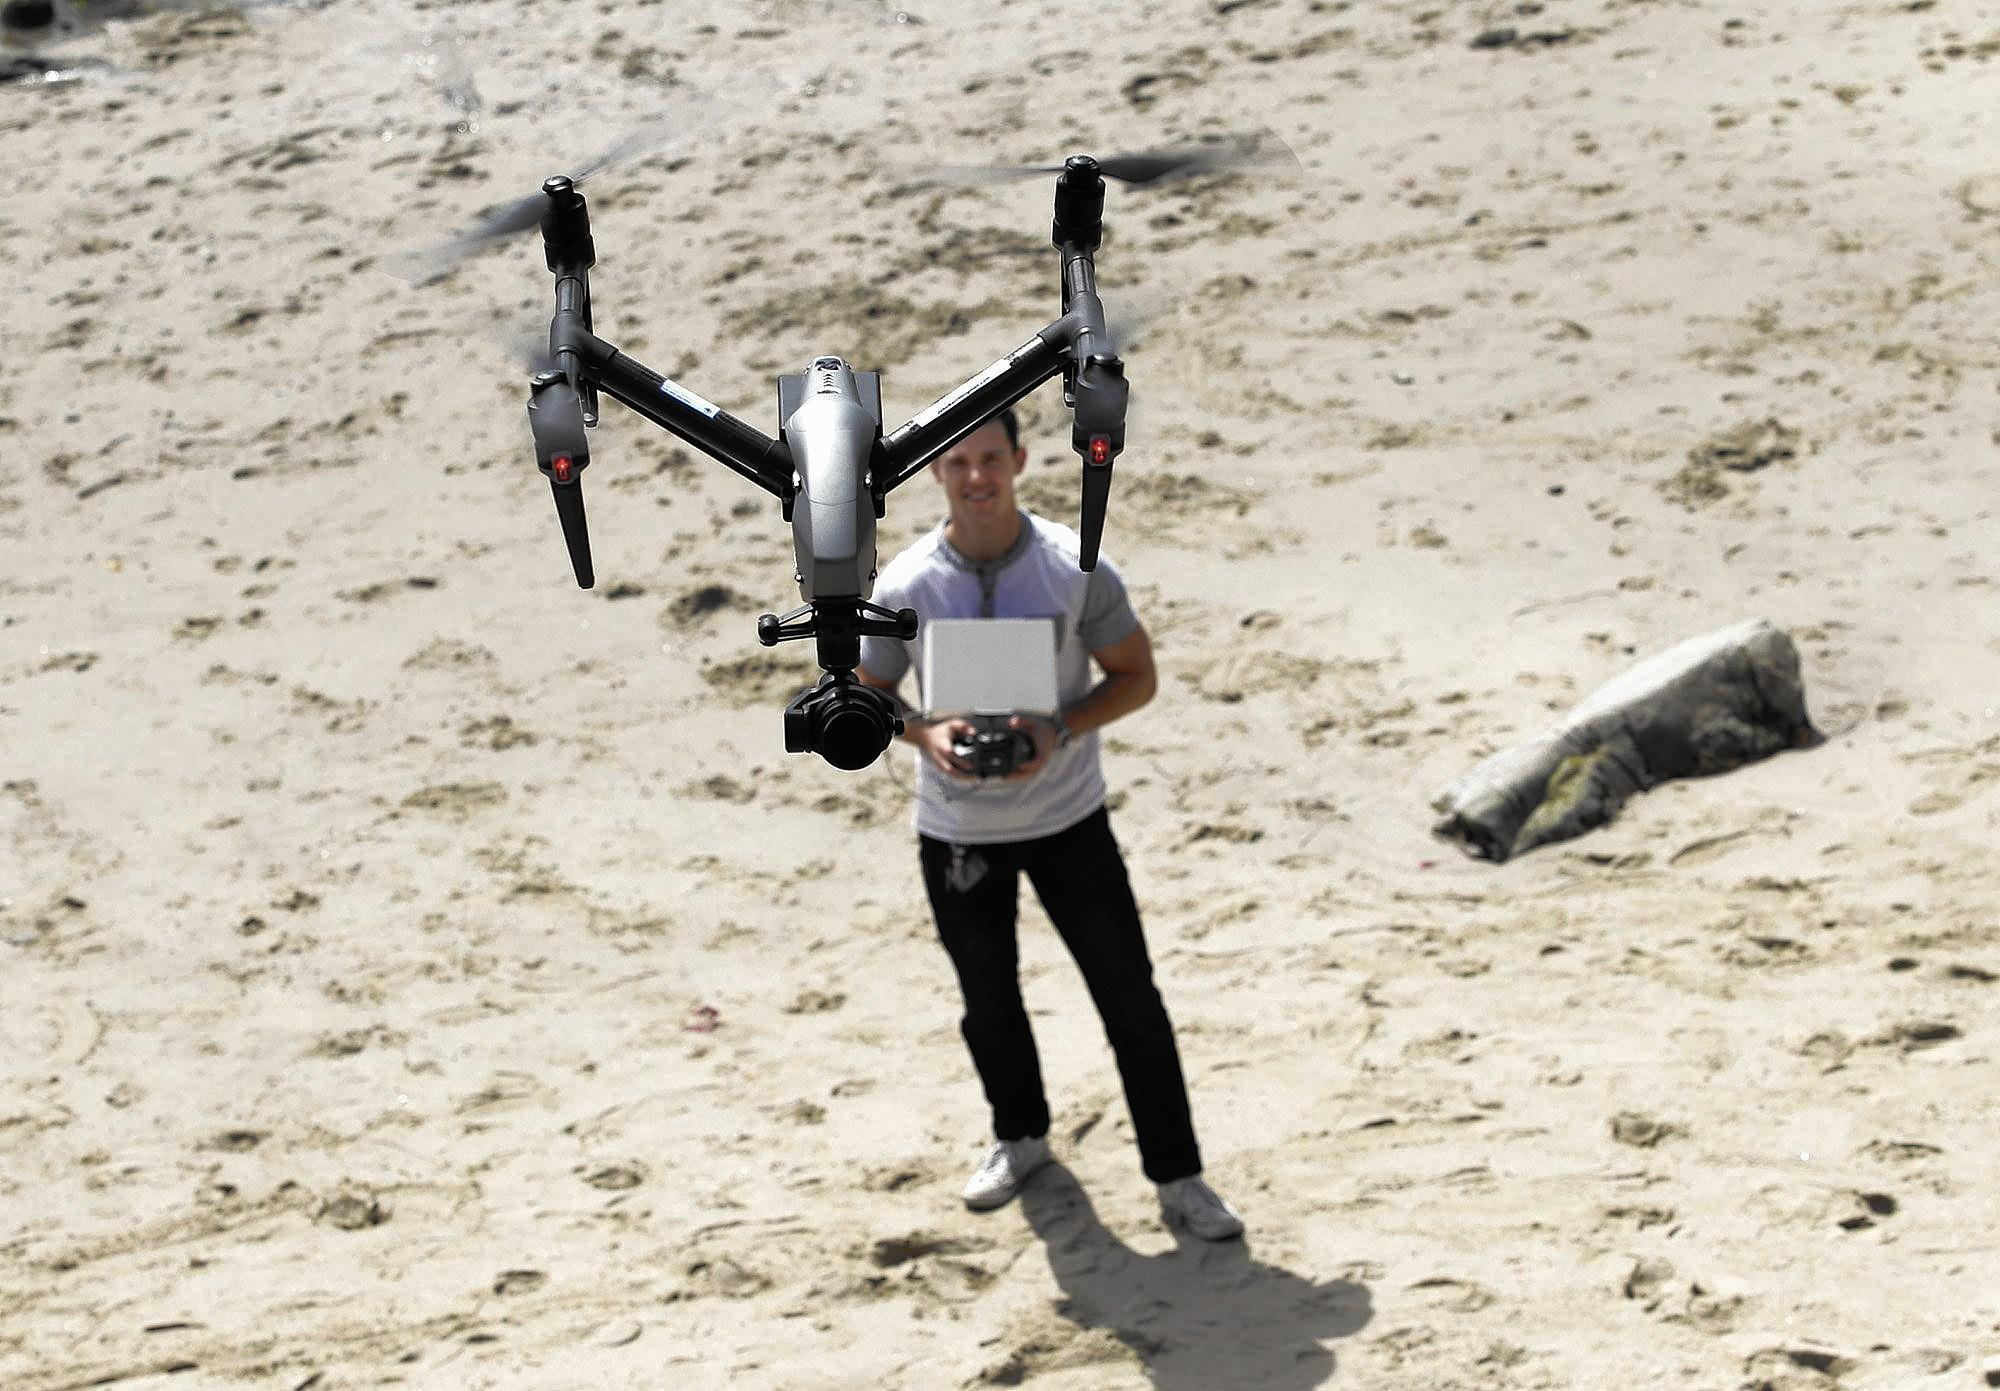 Cities look for ways to control drone misuse